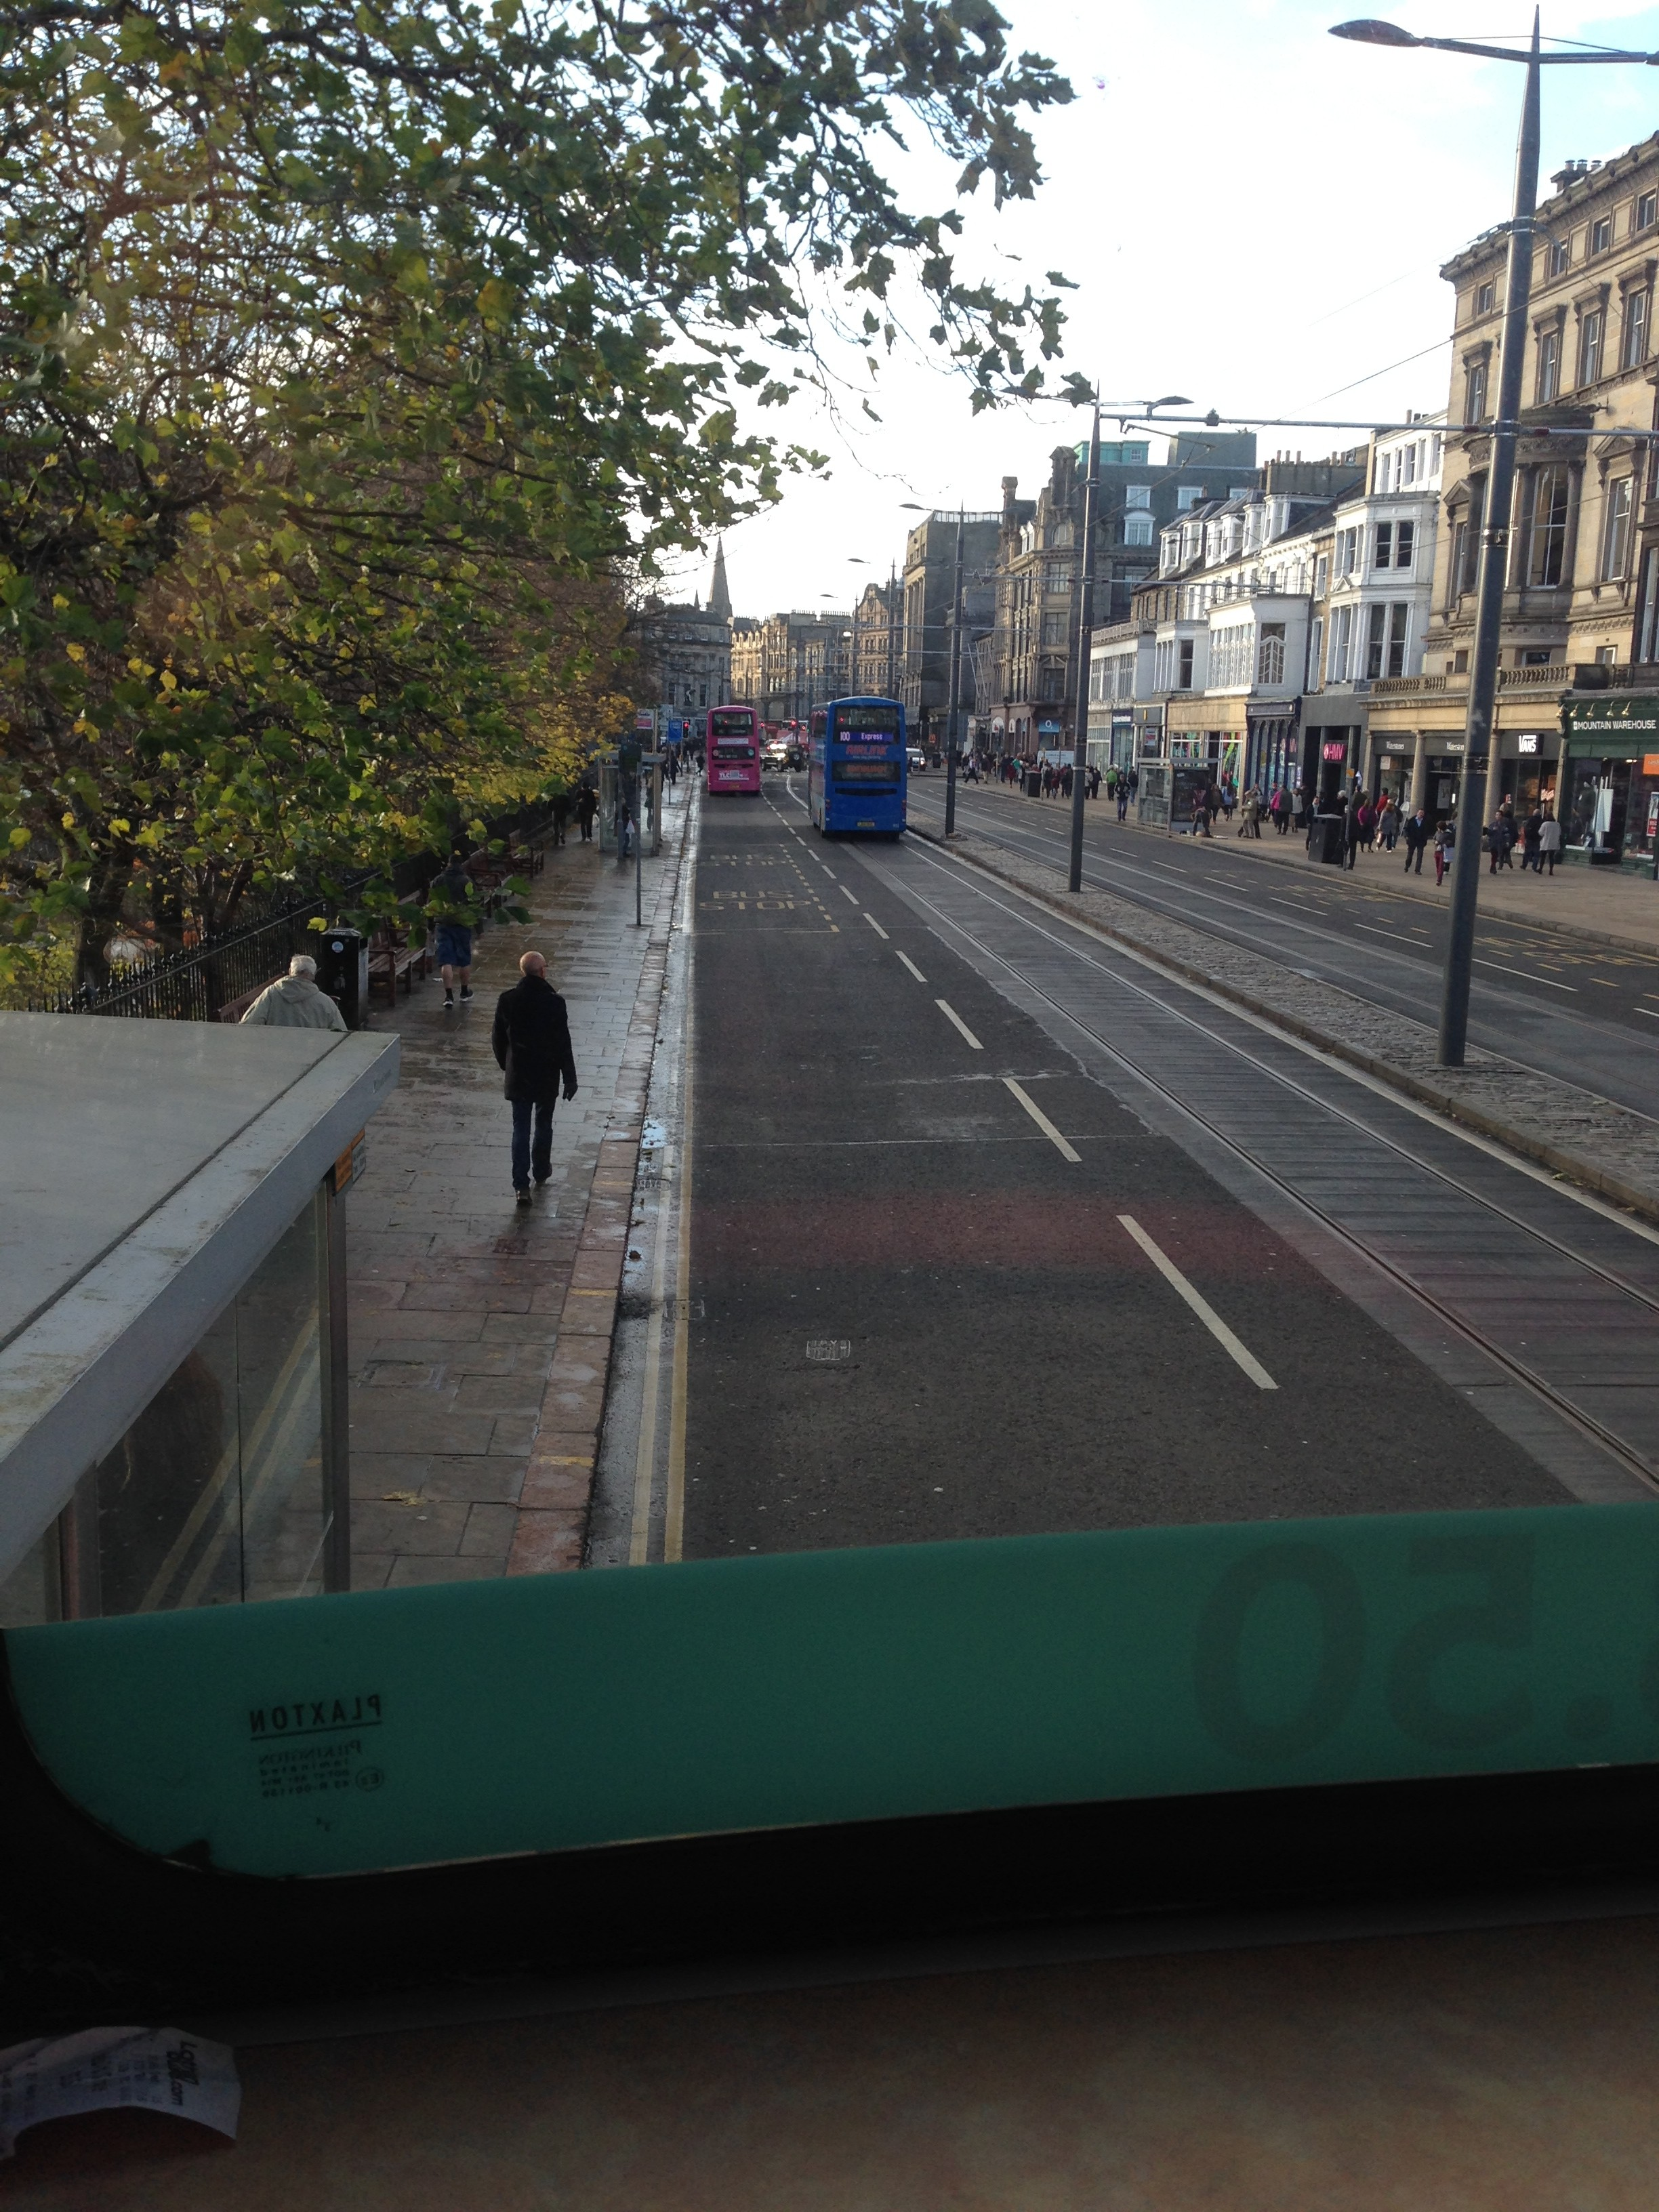 View of Princes' Street, Edinburgh, from the top layer of our double-decker bus.